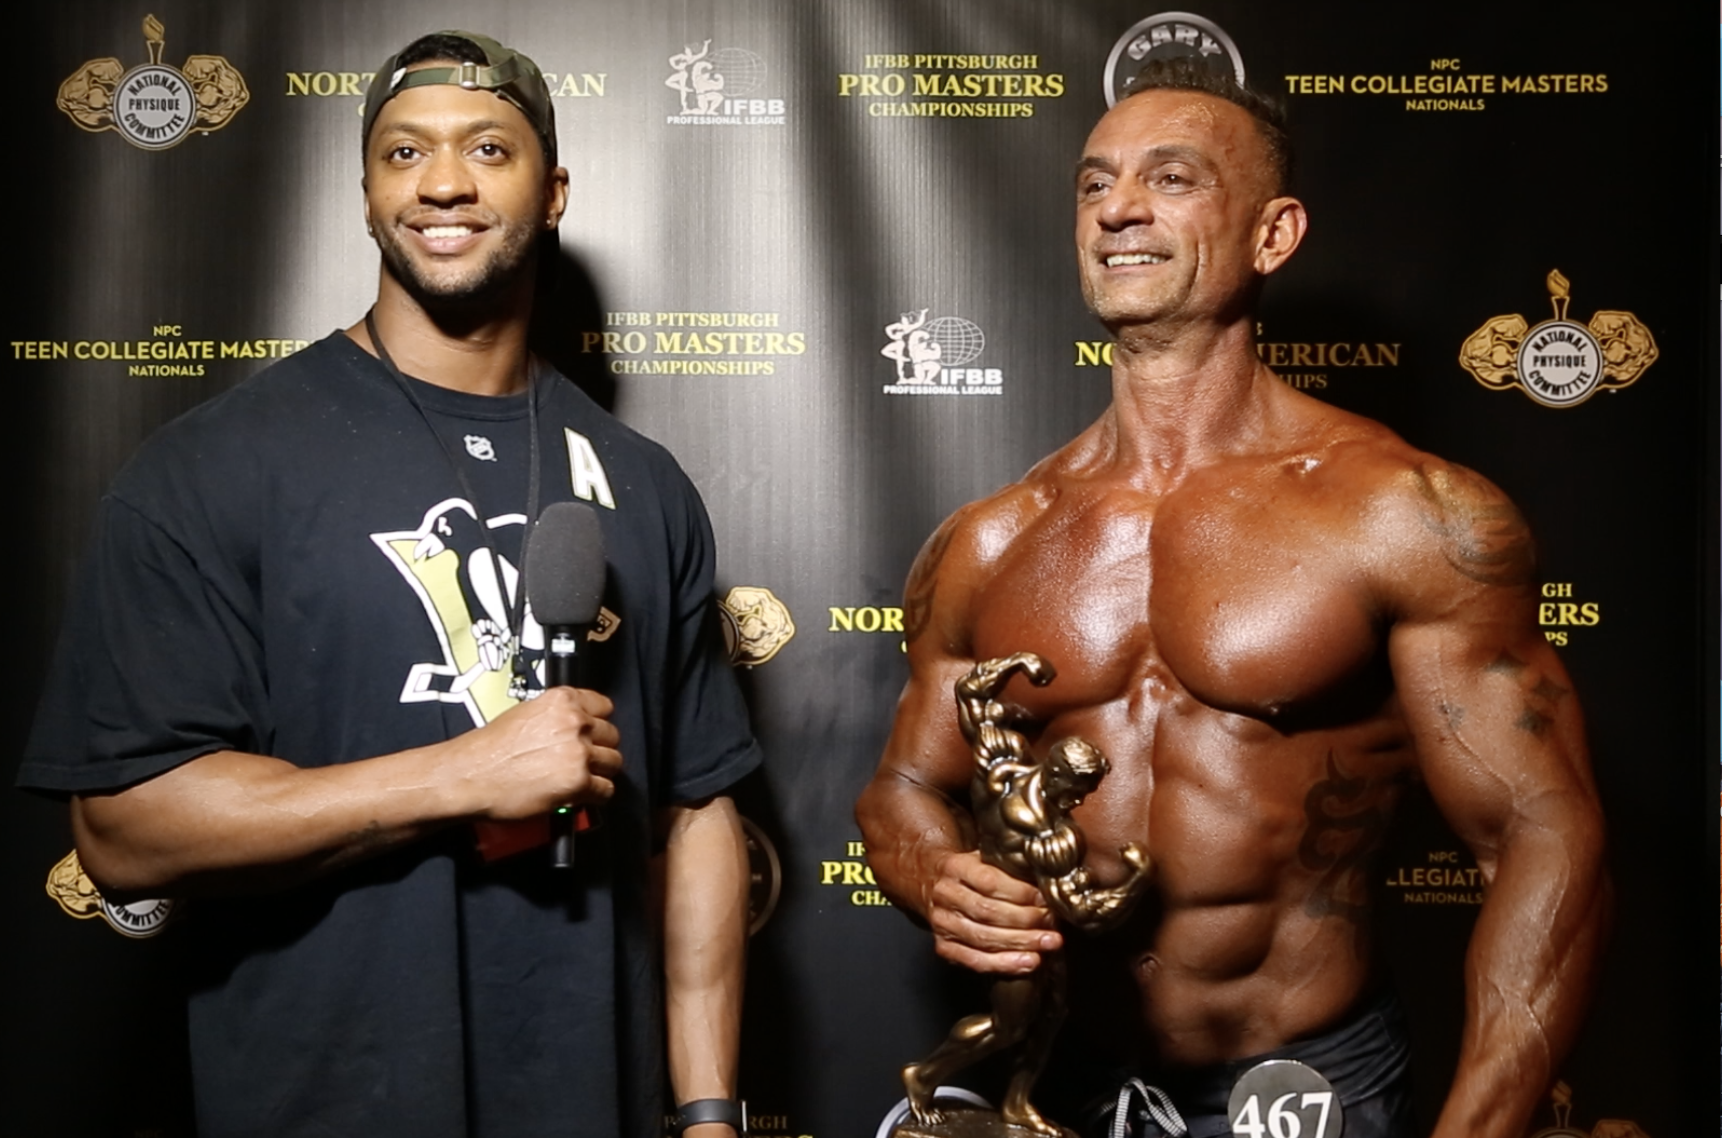 2017 NPC Teen, Collegiate, Masters Nationals Men's Physique Overall Winners